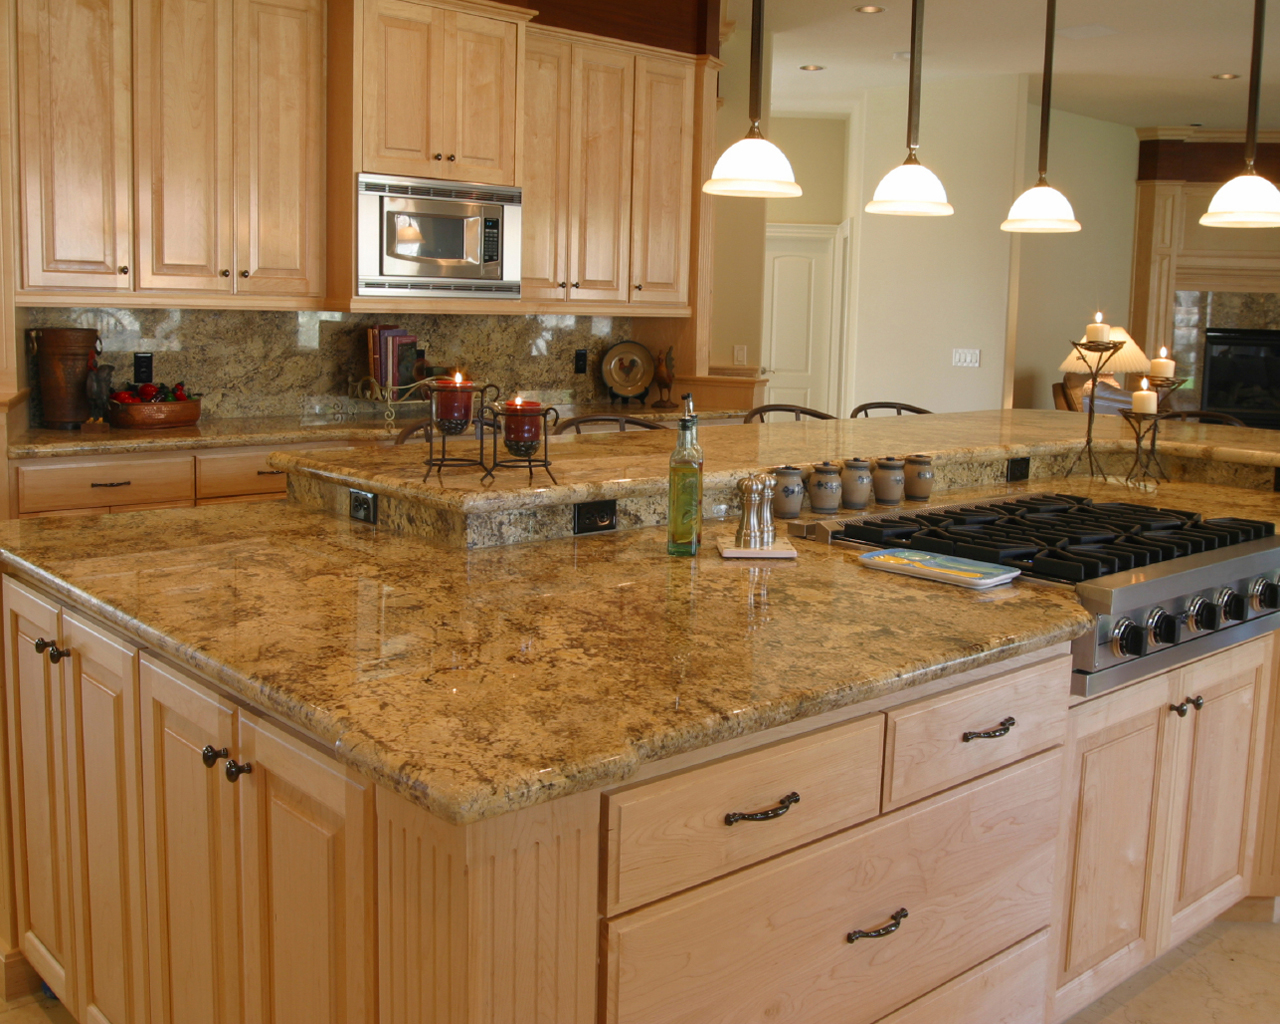 Kitchen with River Gold Granite - Luxurious Accent - HomesFeed